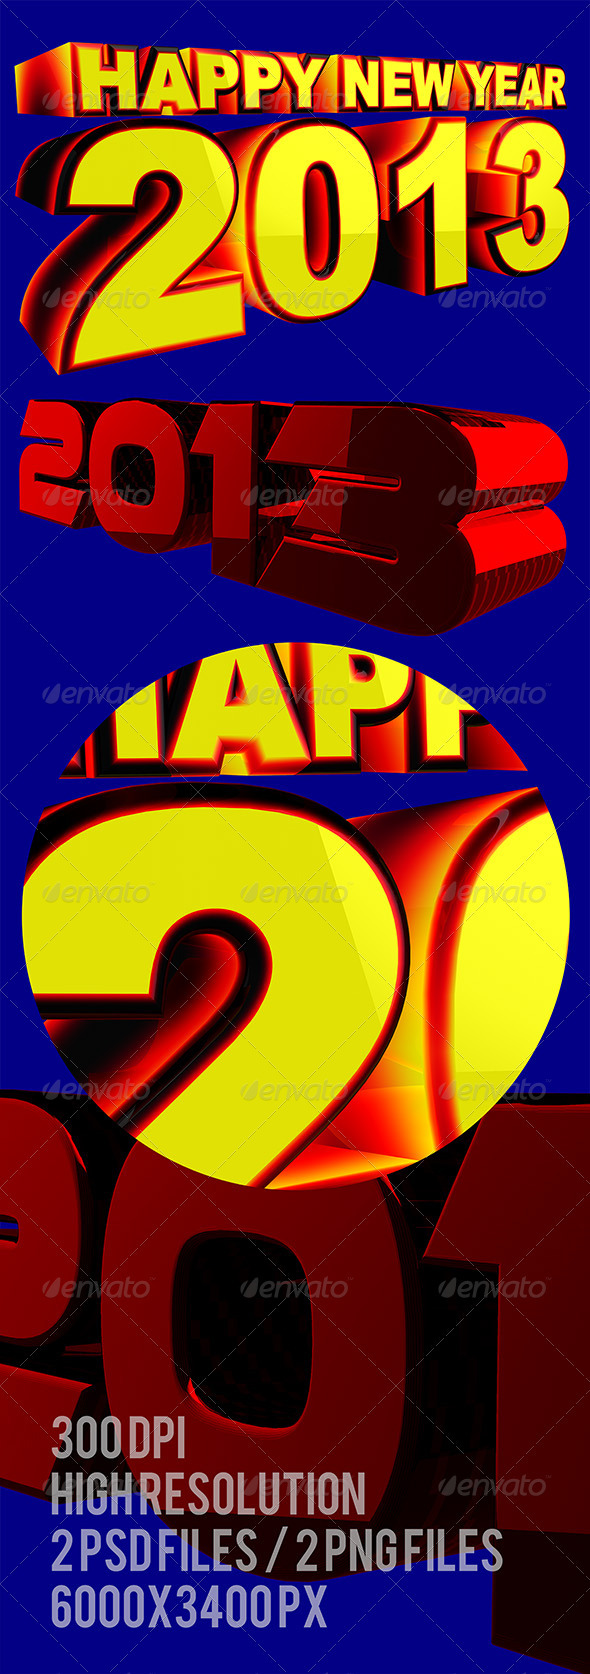 GraphicRiver Happy New Year 2013 3D Text Render 3399667